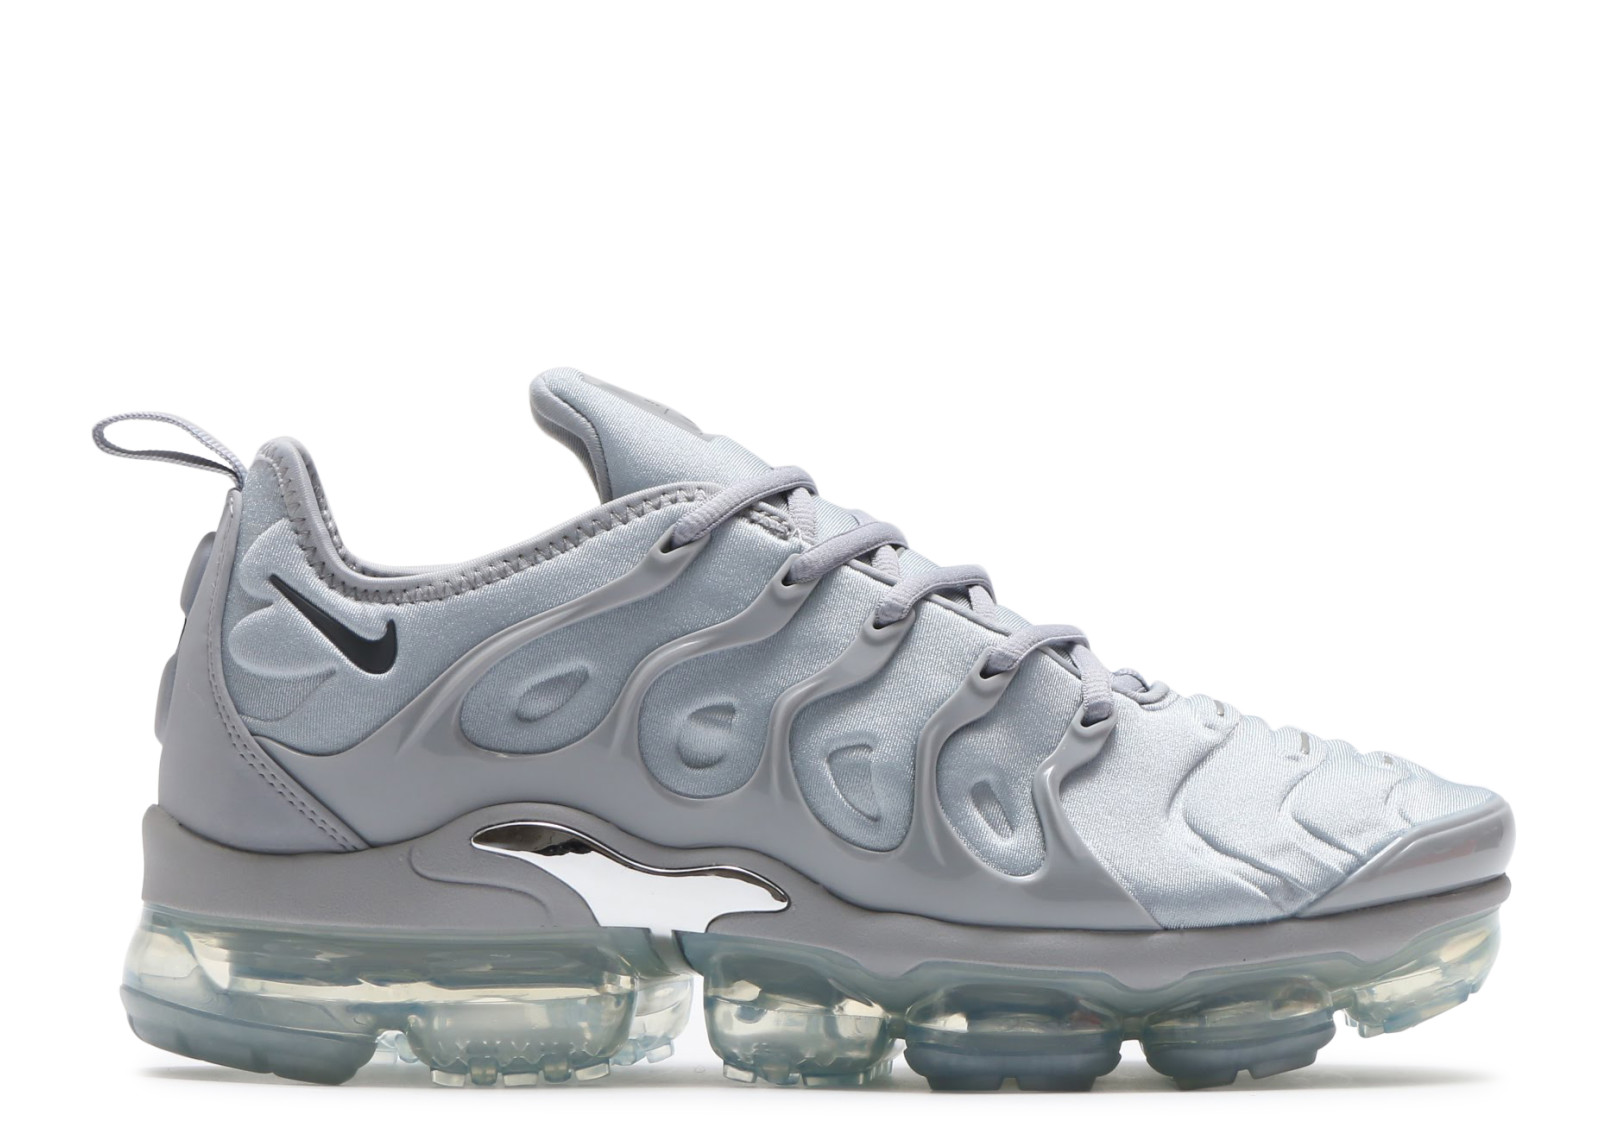 4b1ccbf55f5d5 Nike Air VaporMax Plus Cool Grey - 0